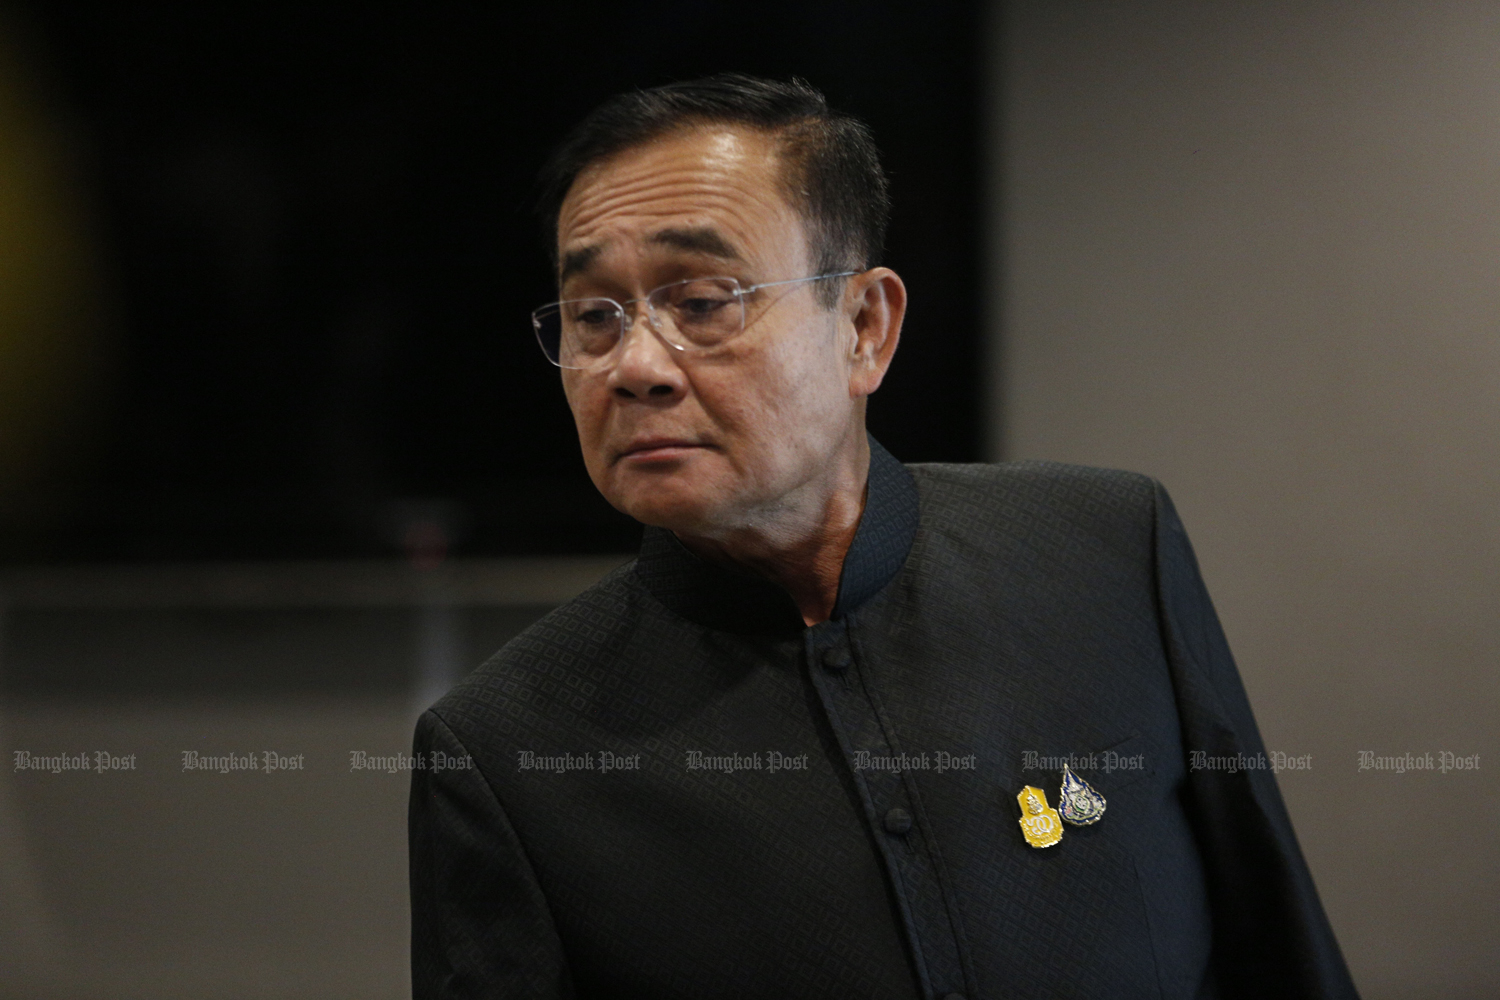 Prime Minister Prayut Chan-o-cha is expected to rely on the unity of the armed forces, which have done a good job over the past five years in backing him. (Bangkok Post photo)